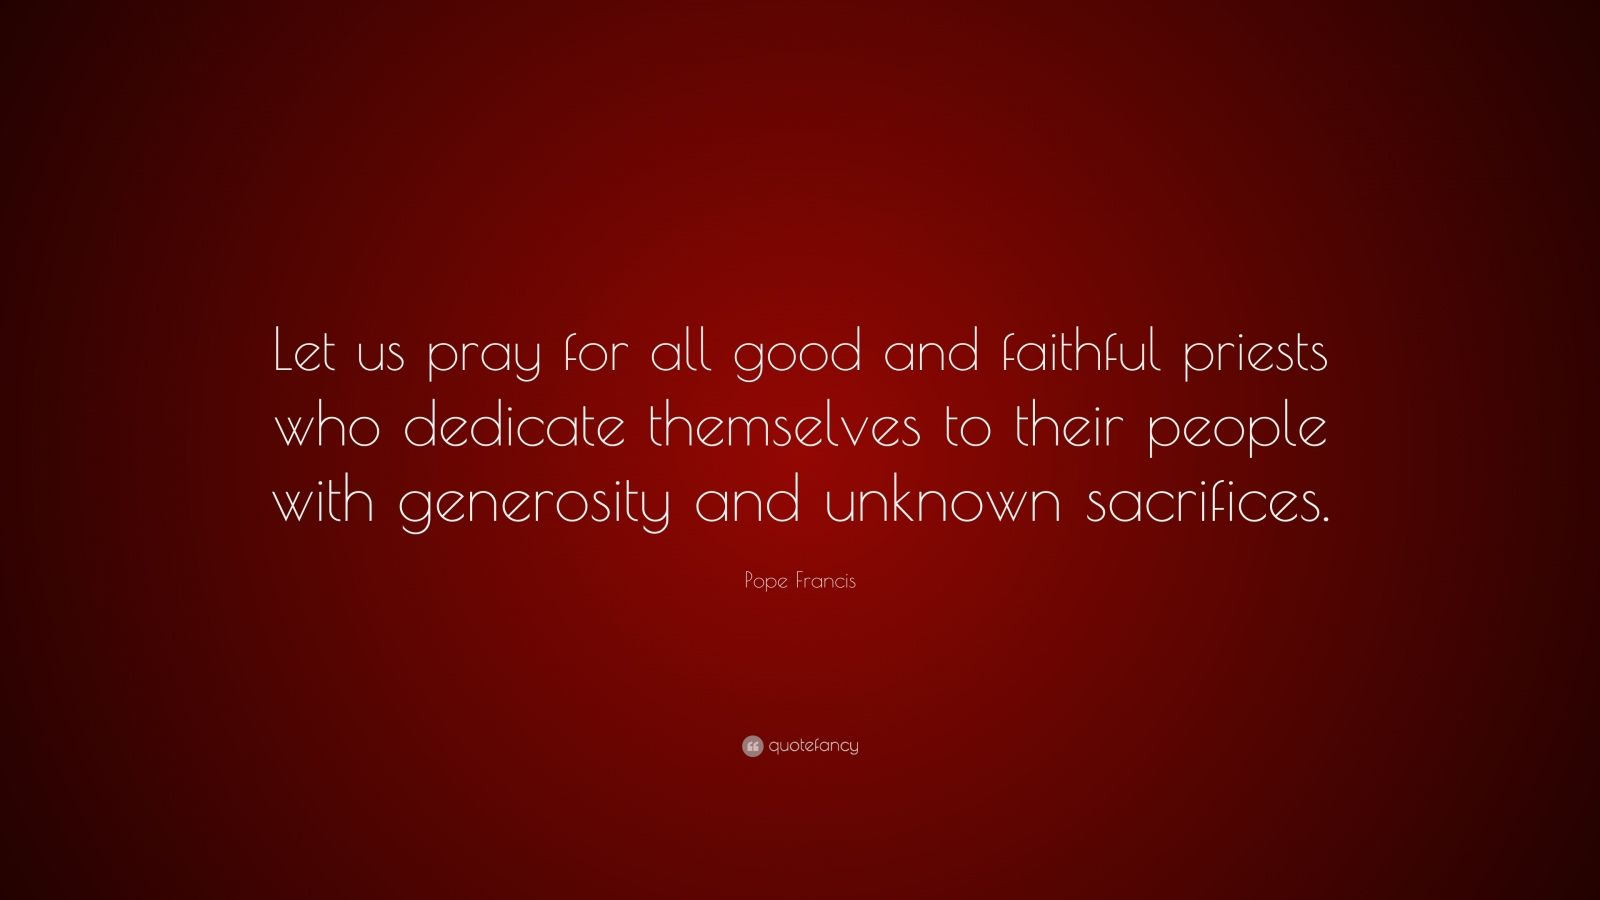 """Pope Francis Quote: """"Let us pray for all good and faithful priests who dedicate themselves to their people with generosity and unknown sacrifices."""""""